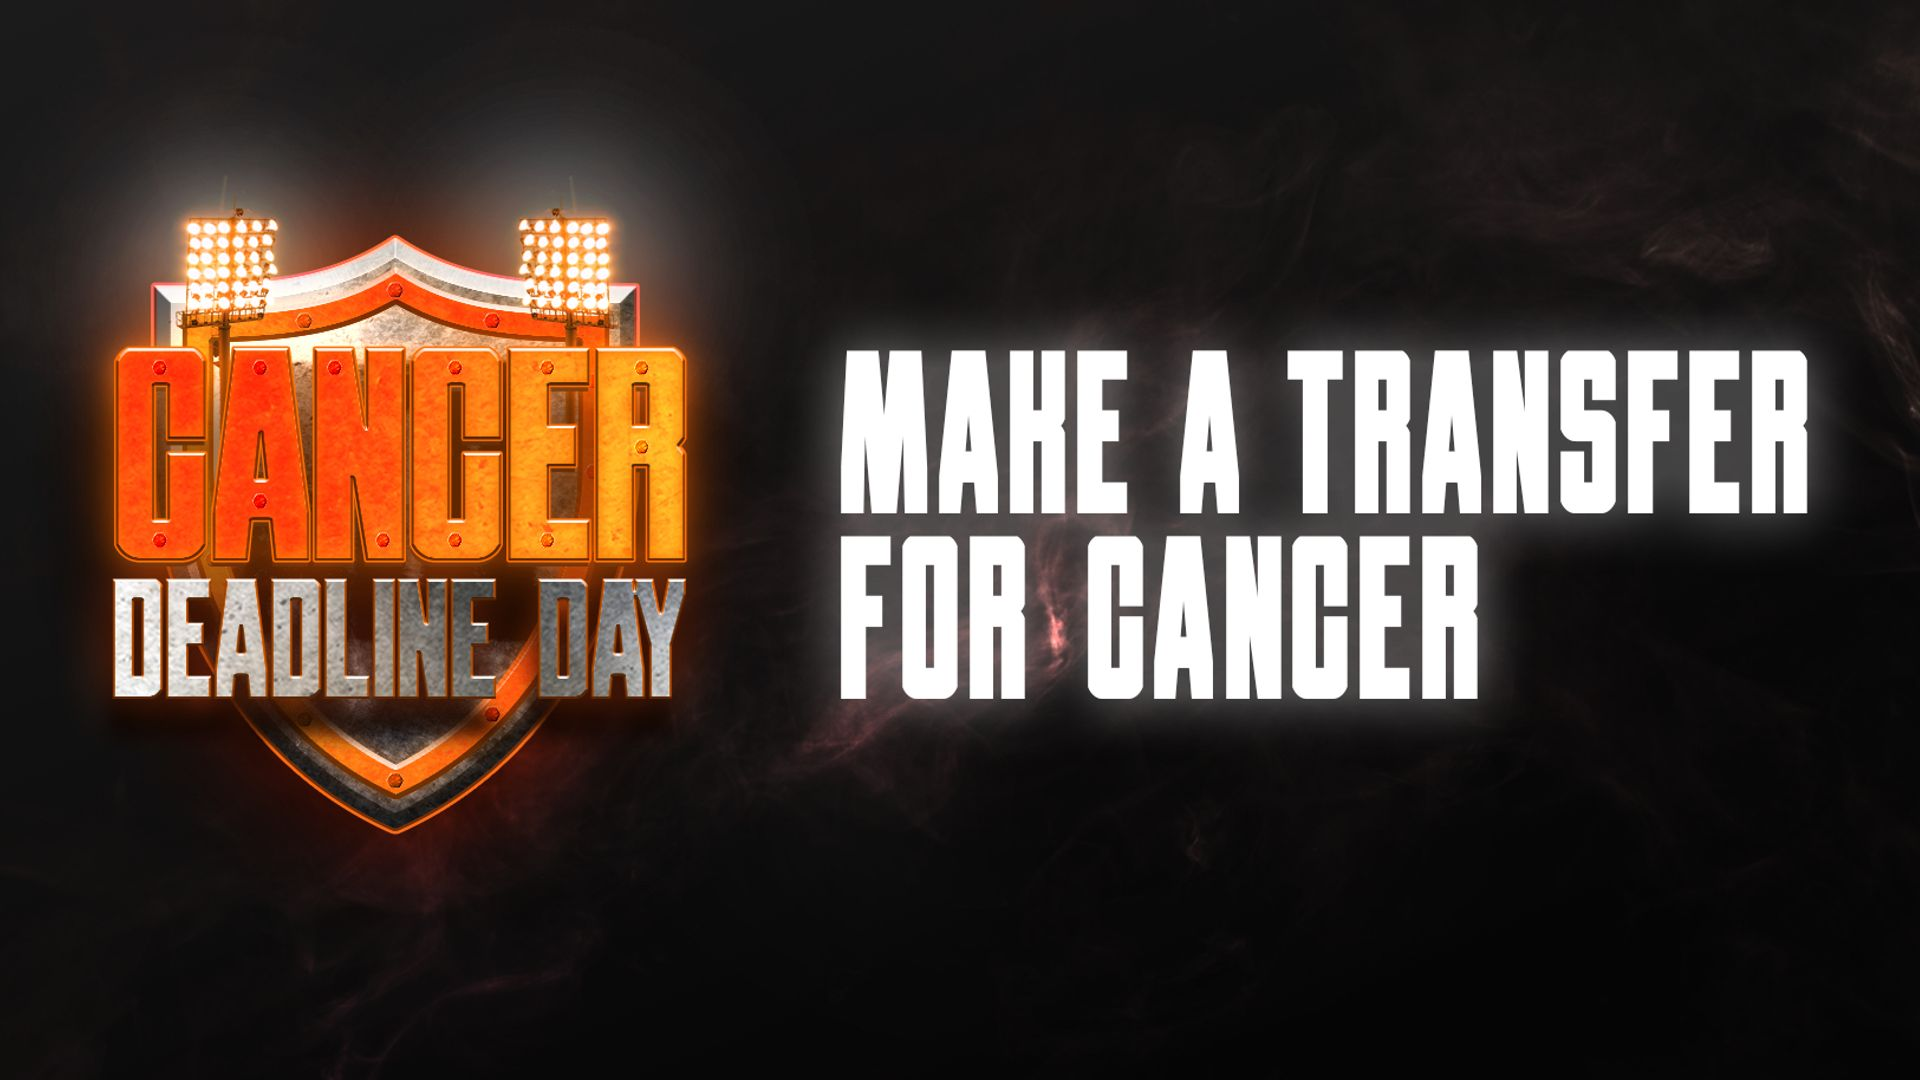 Fans club together for Cancer Deadline Day